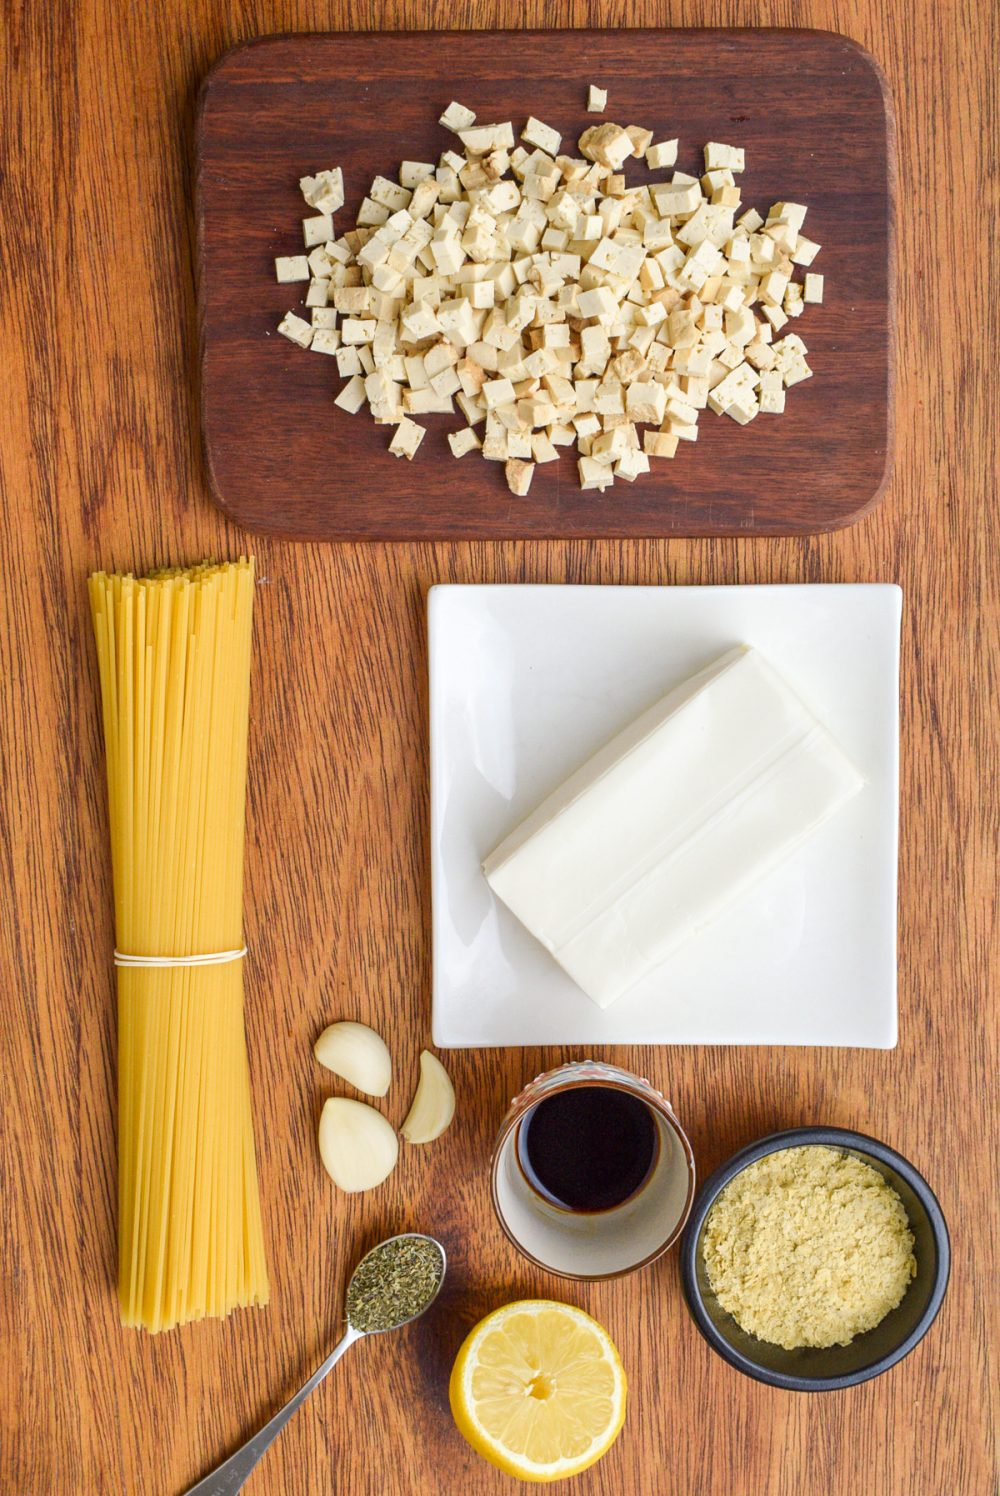 Ingredients for the vegan carbonara - a block of silken tofu, diced smoked tofu, a bunch of spaghetti, garlic cloves, herbs, half a lemon, soy sauce and nutritional yeast.